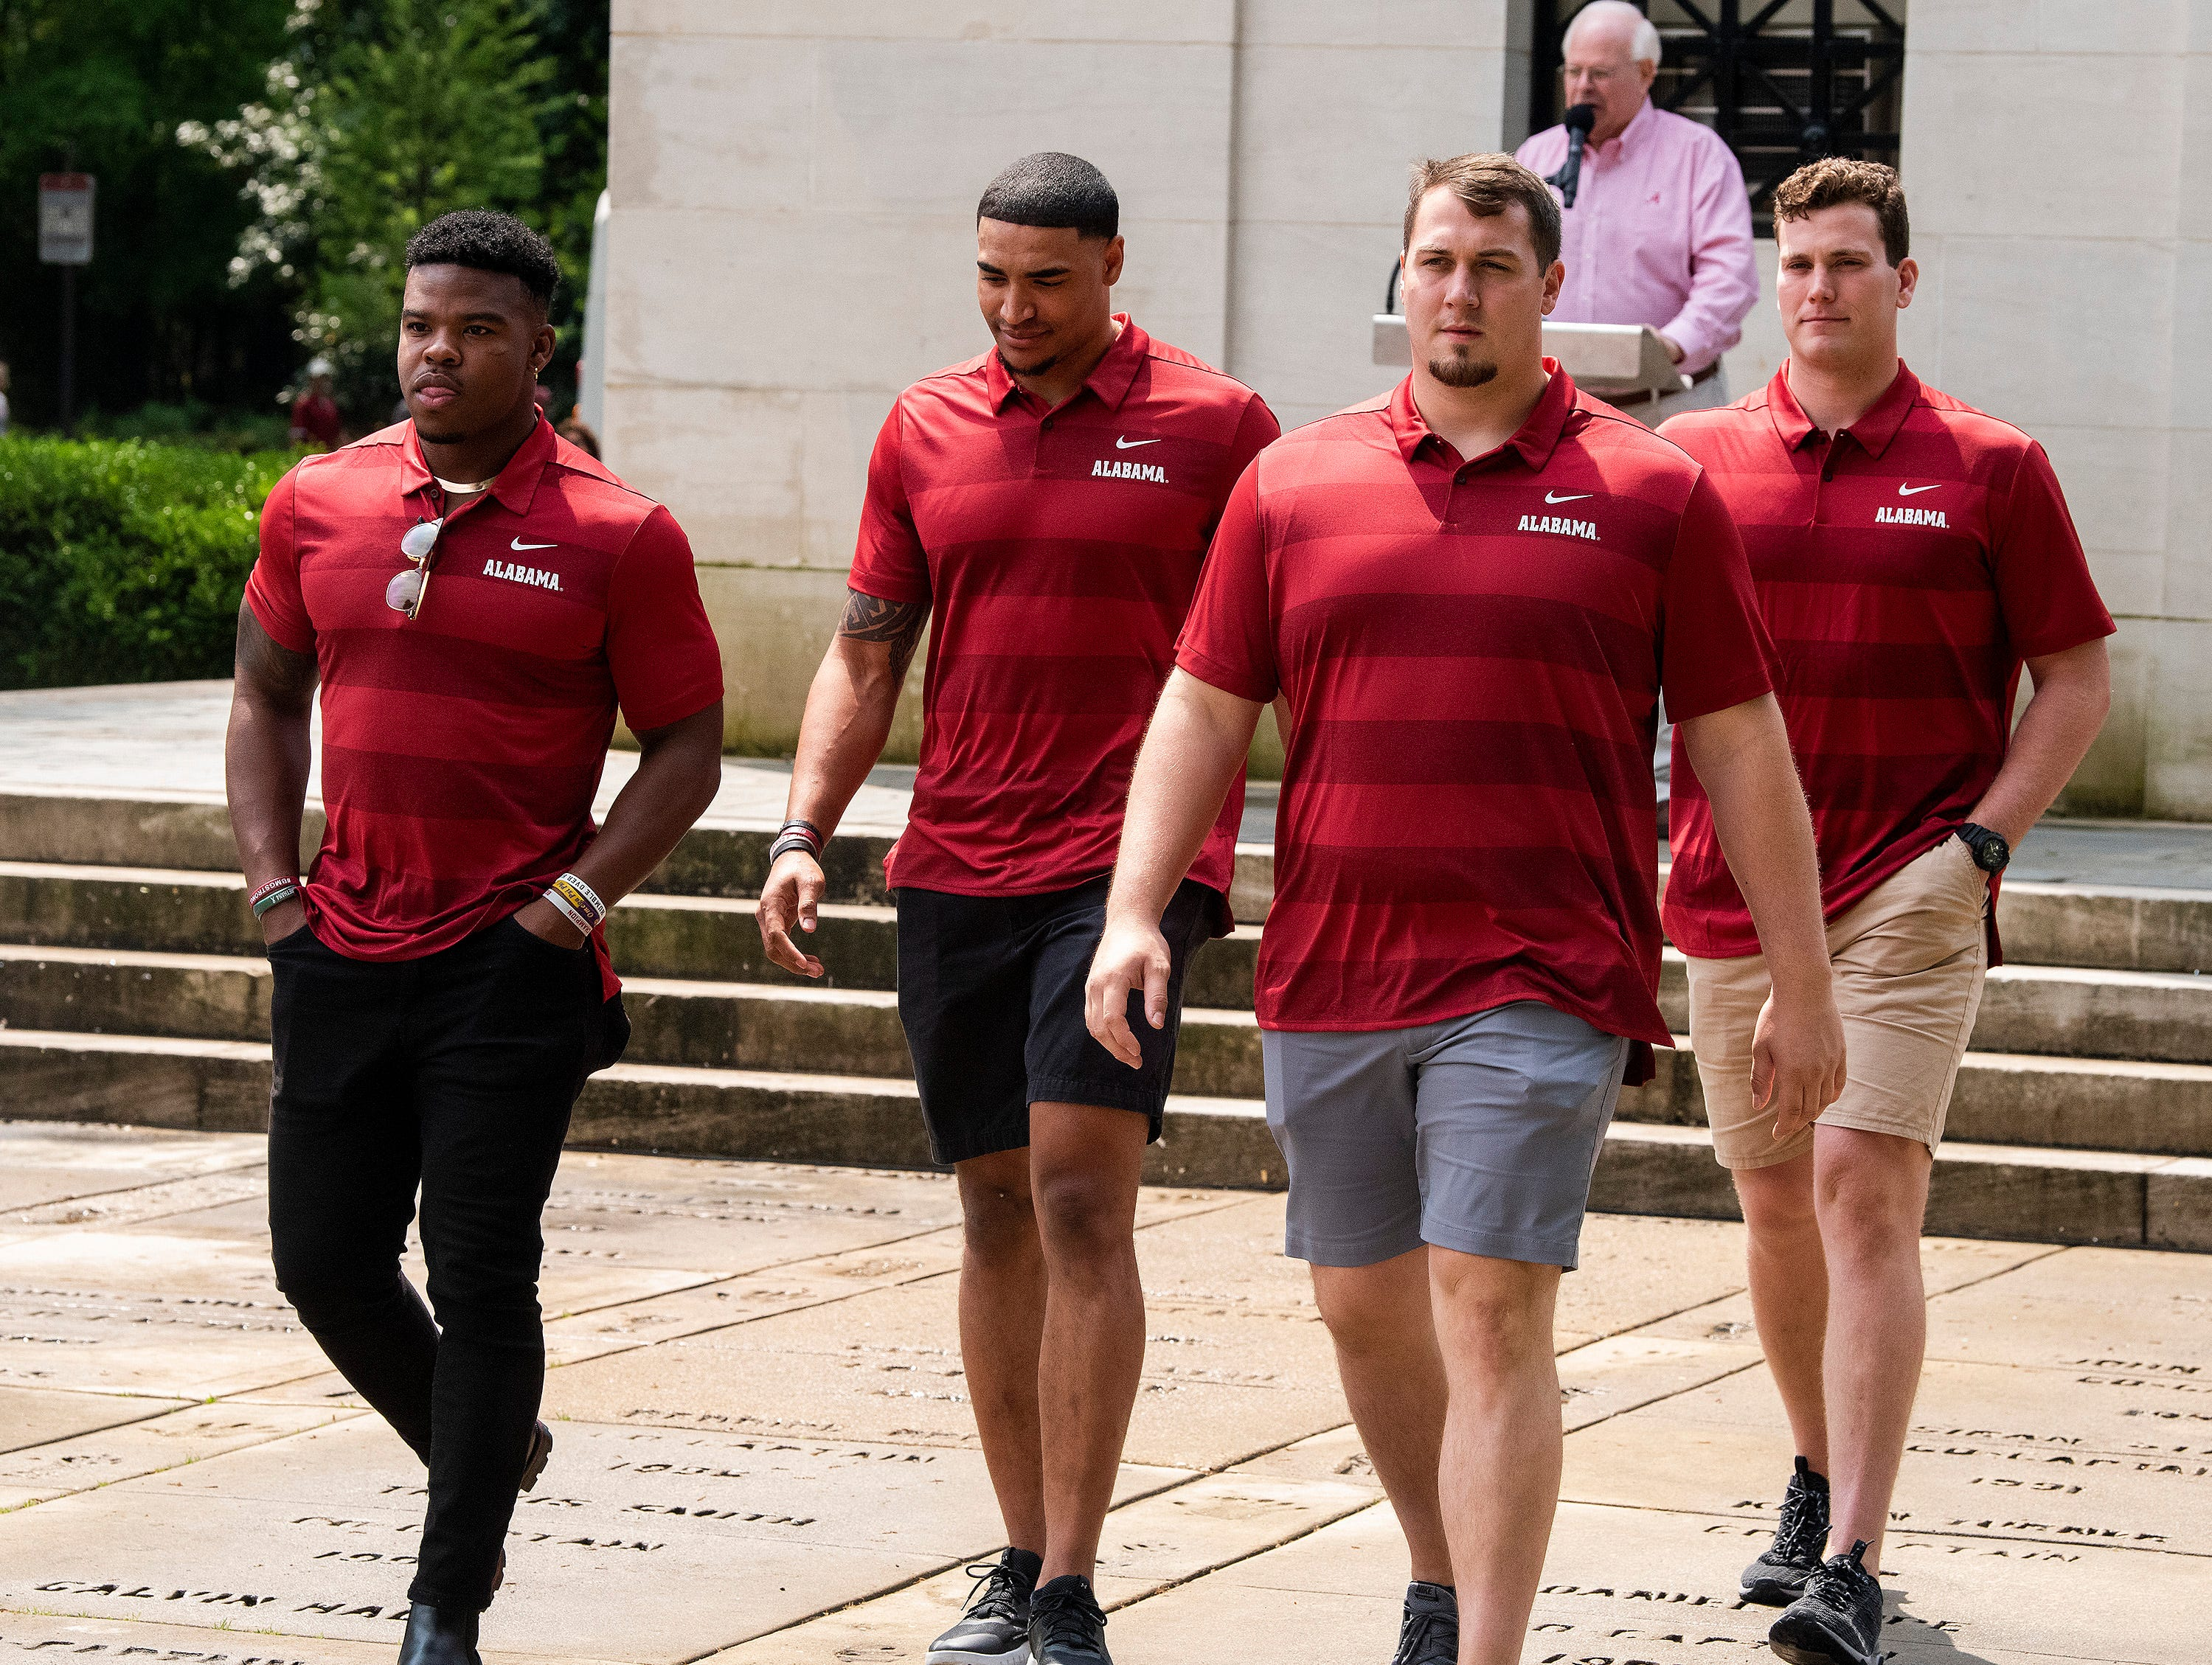 Damien Farris, from left, Christian Miller, Ross Pierschbacher and Mark Hentges during the Alabama football team captain ceremony at Denny Chimes on the Alabama campus in Tuscaloosa, Ala., on Saturday April 13, 2019.